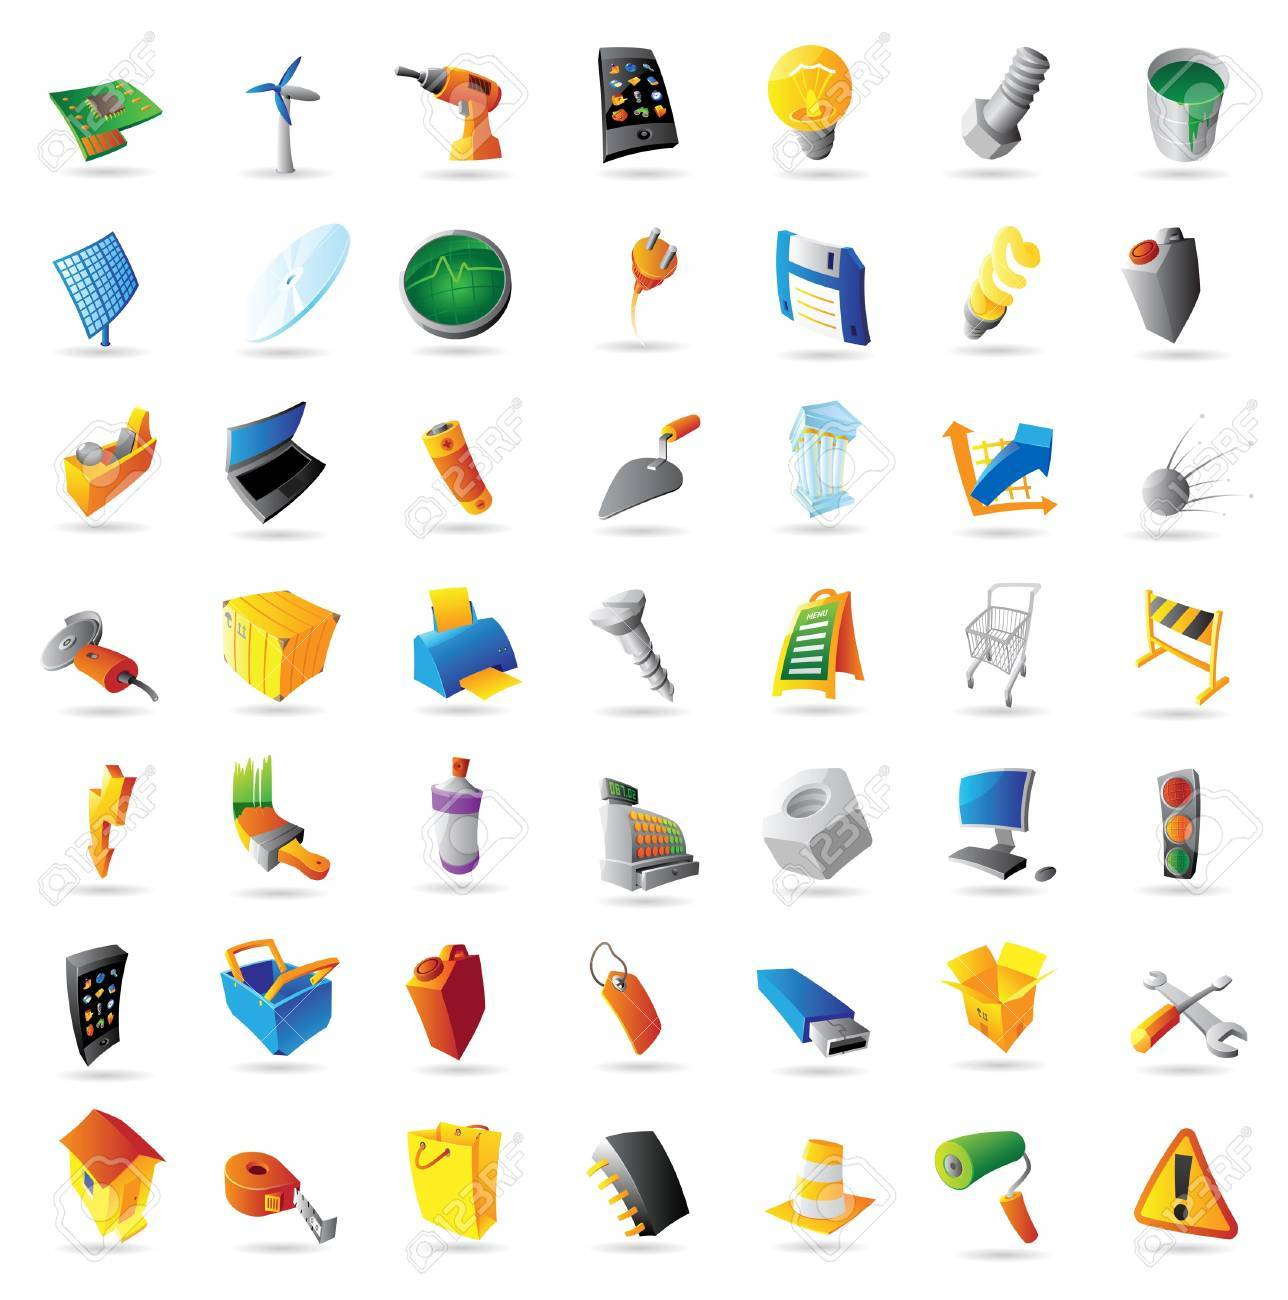 Icons for industry, technology and computers. Vector illustration. - 12885980